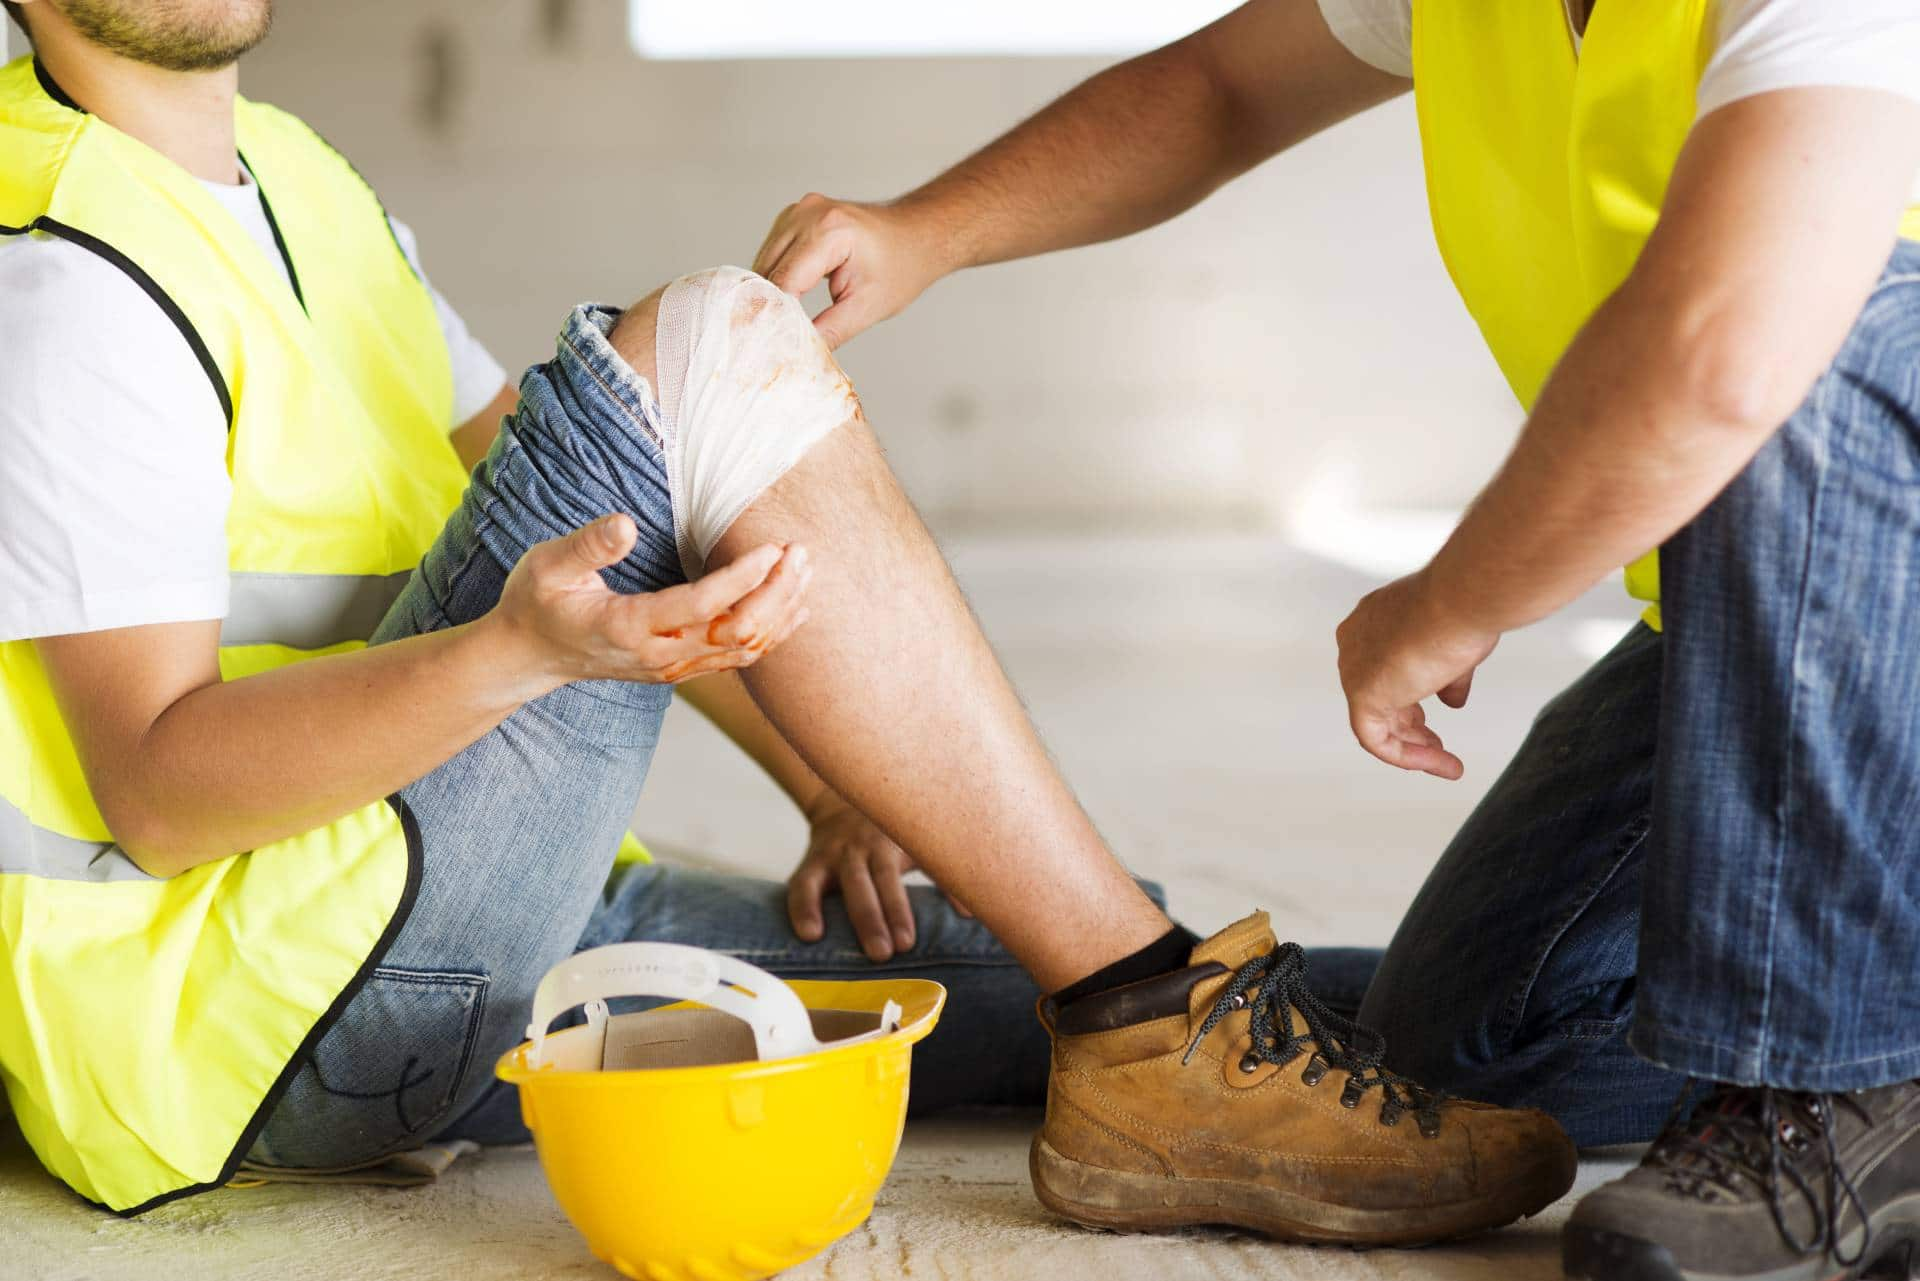 Hurt on the job? Schedule a free consultation with our personal injury lawyers today at the Angell Law firm in Lindbergh.